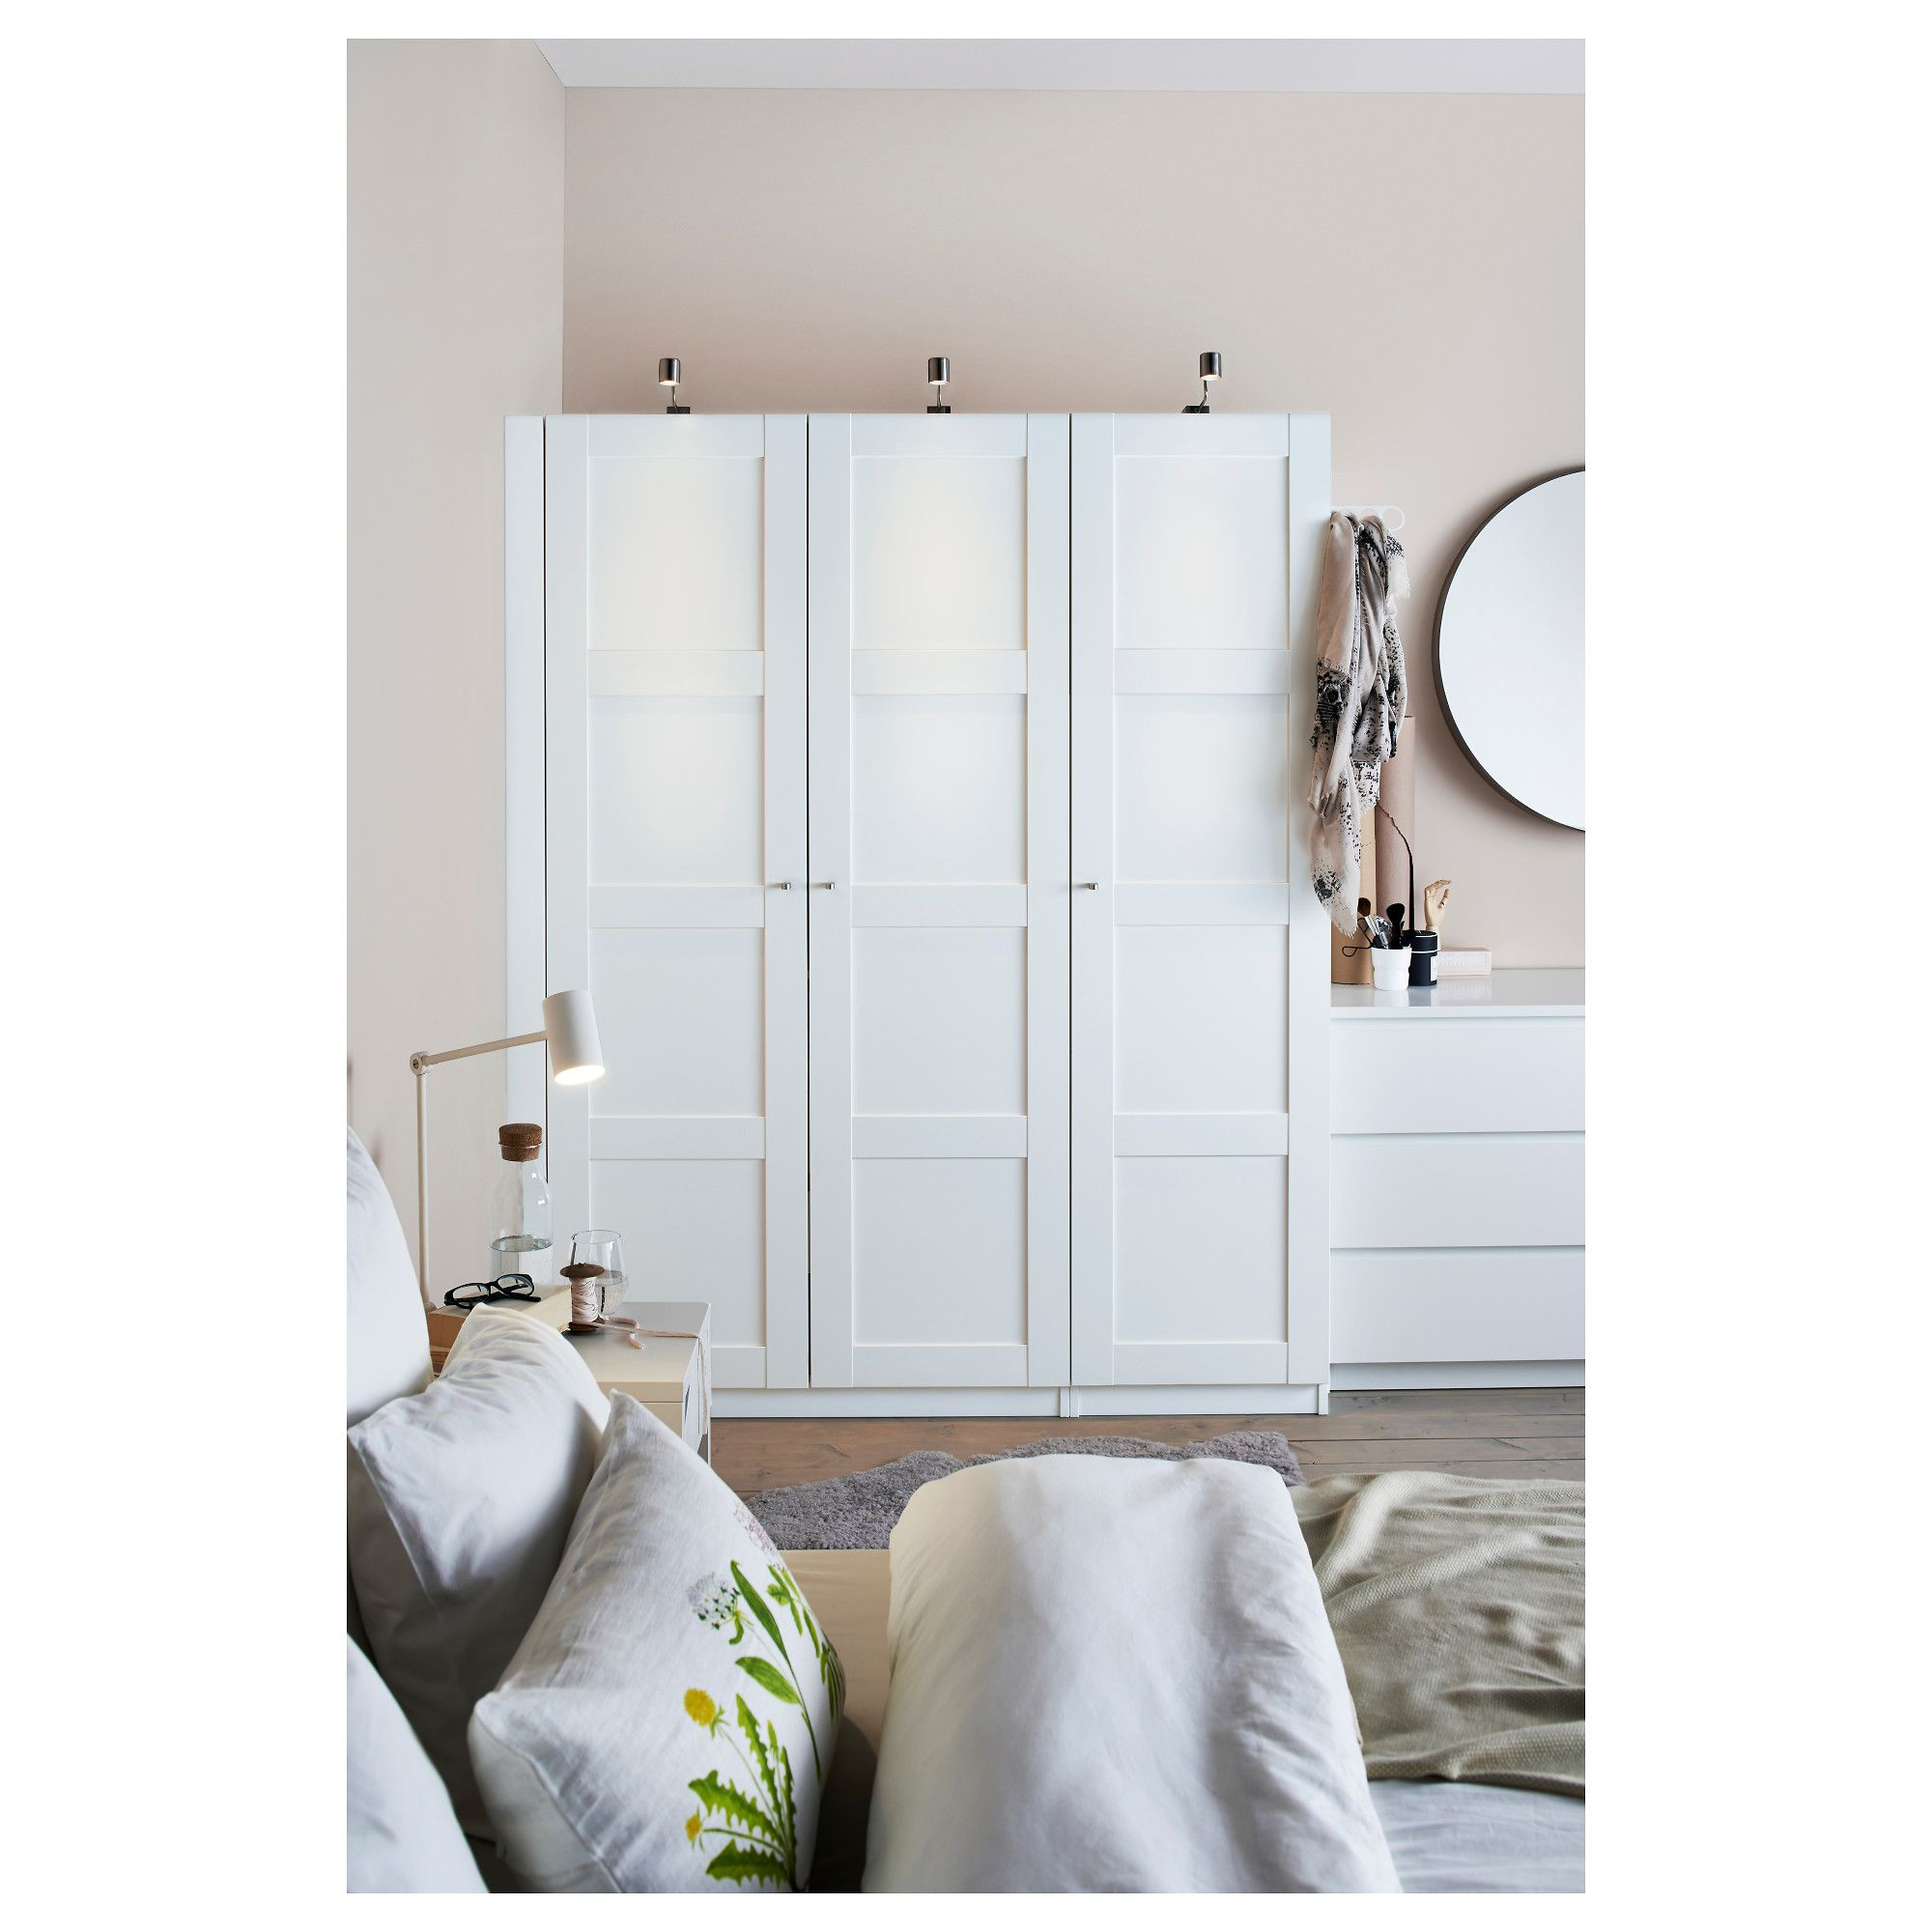 Wardrobe In WhiteBergsbo Ikea Pax White 2019Closet dChtrsQ